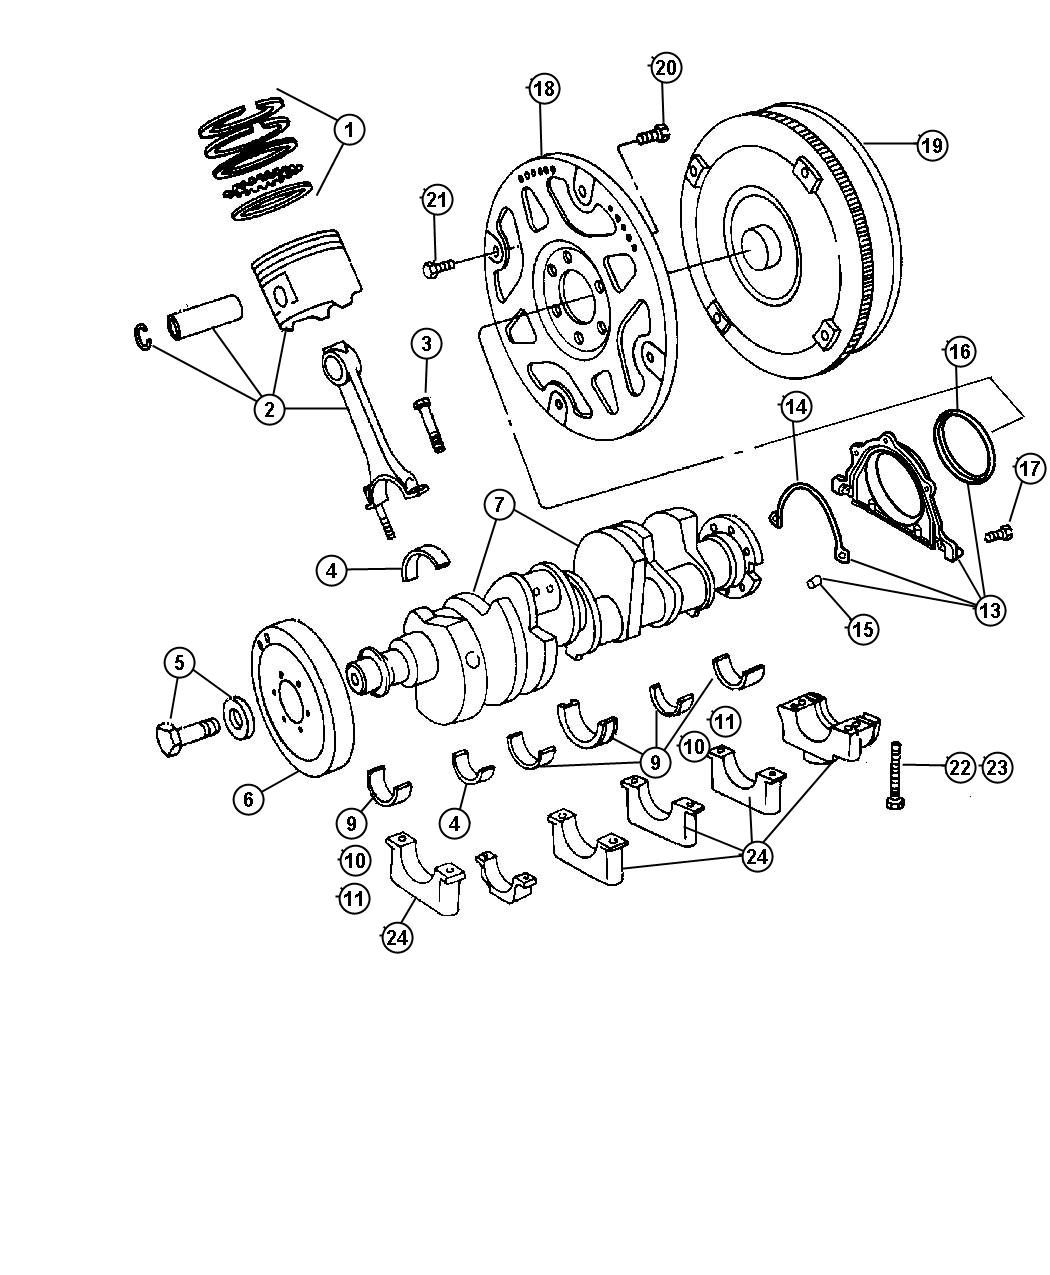 Jeep Grand Cherokee Used for: PISTON PIN AND ROD. STD